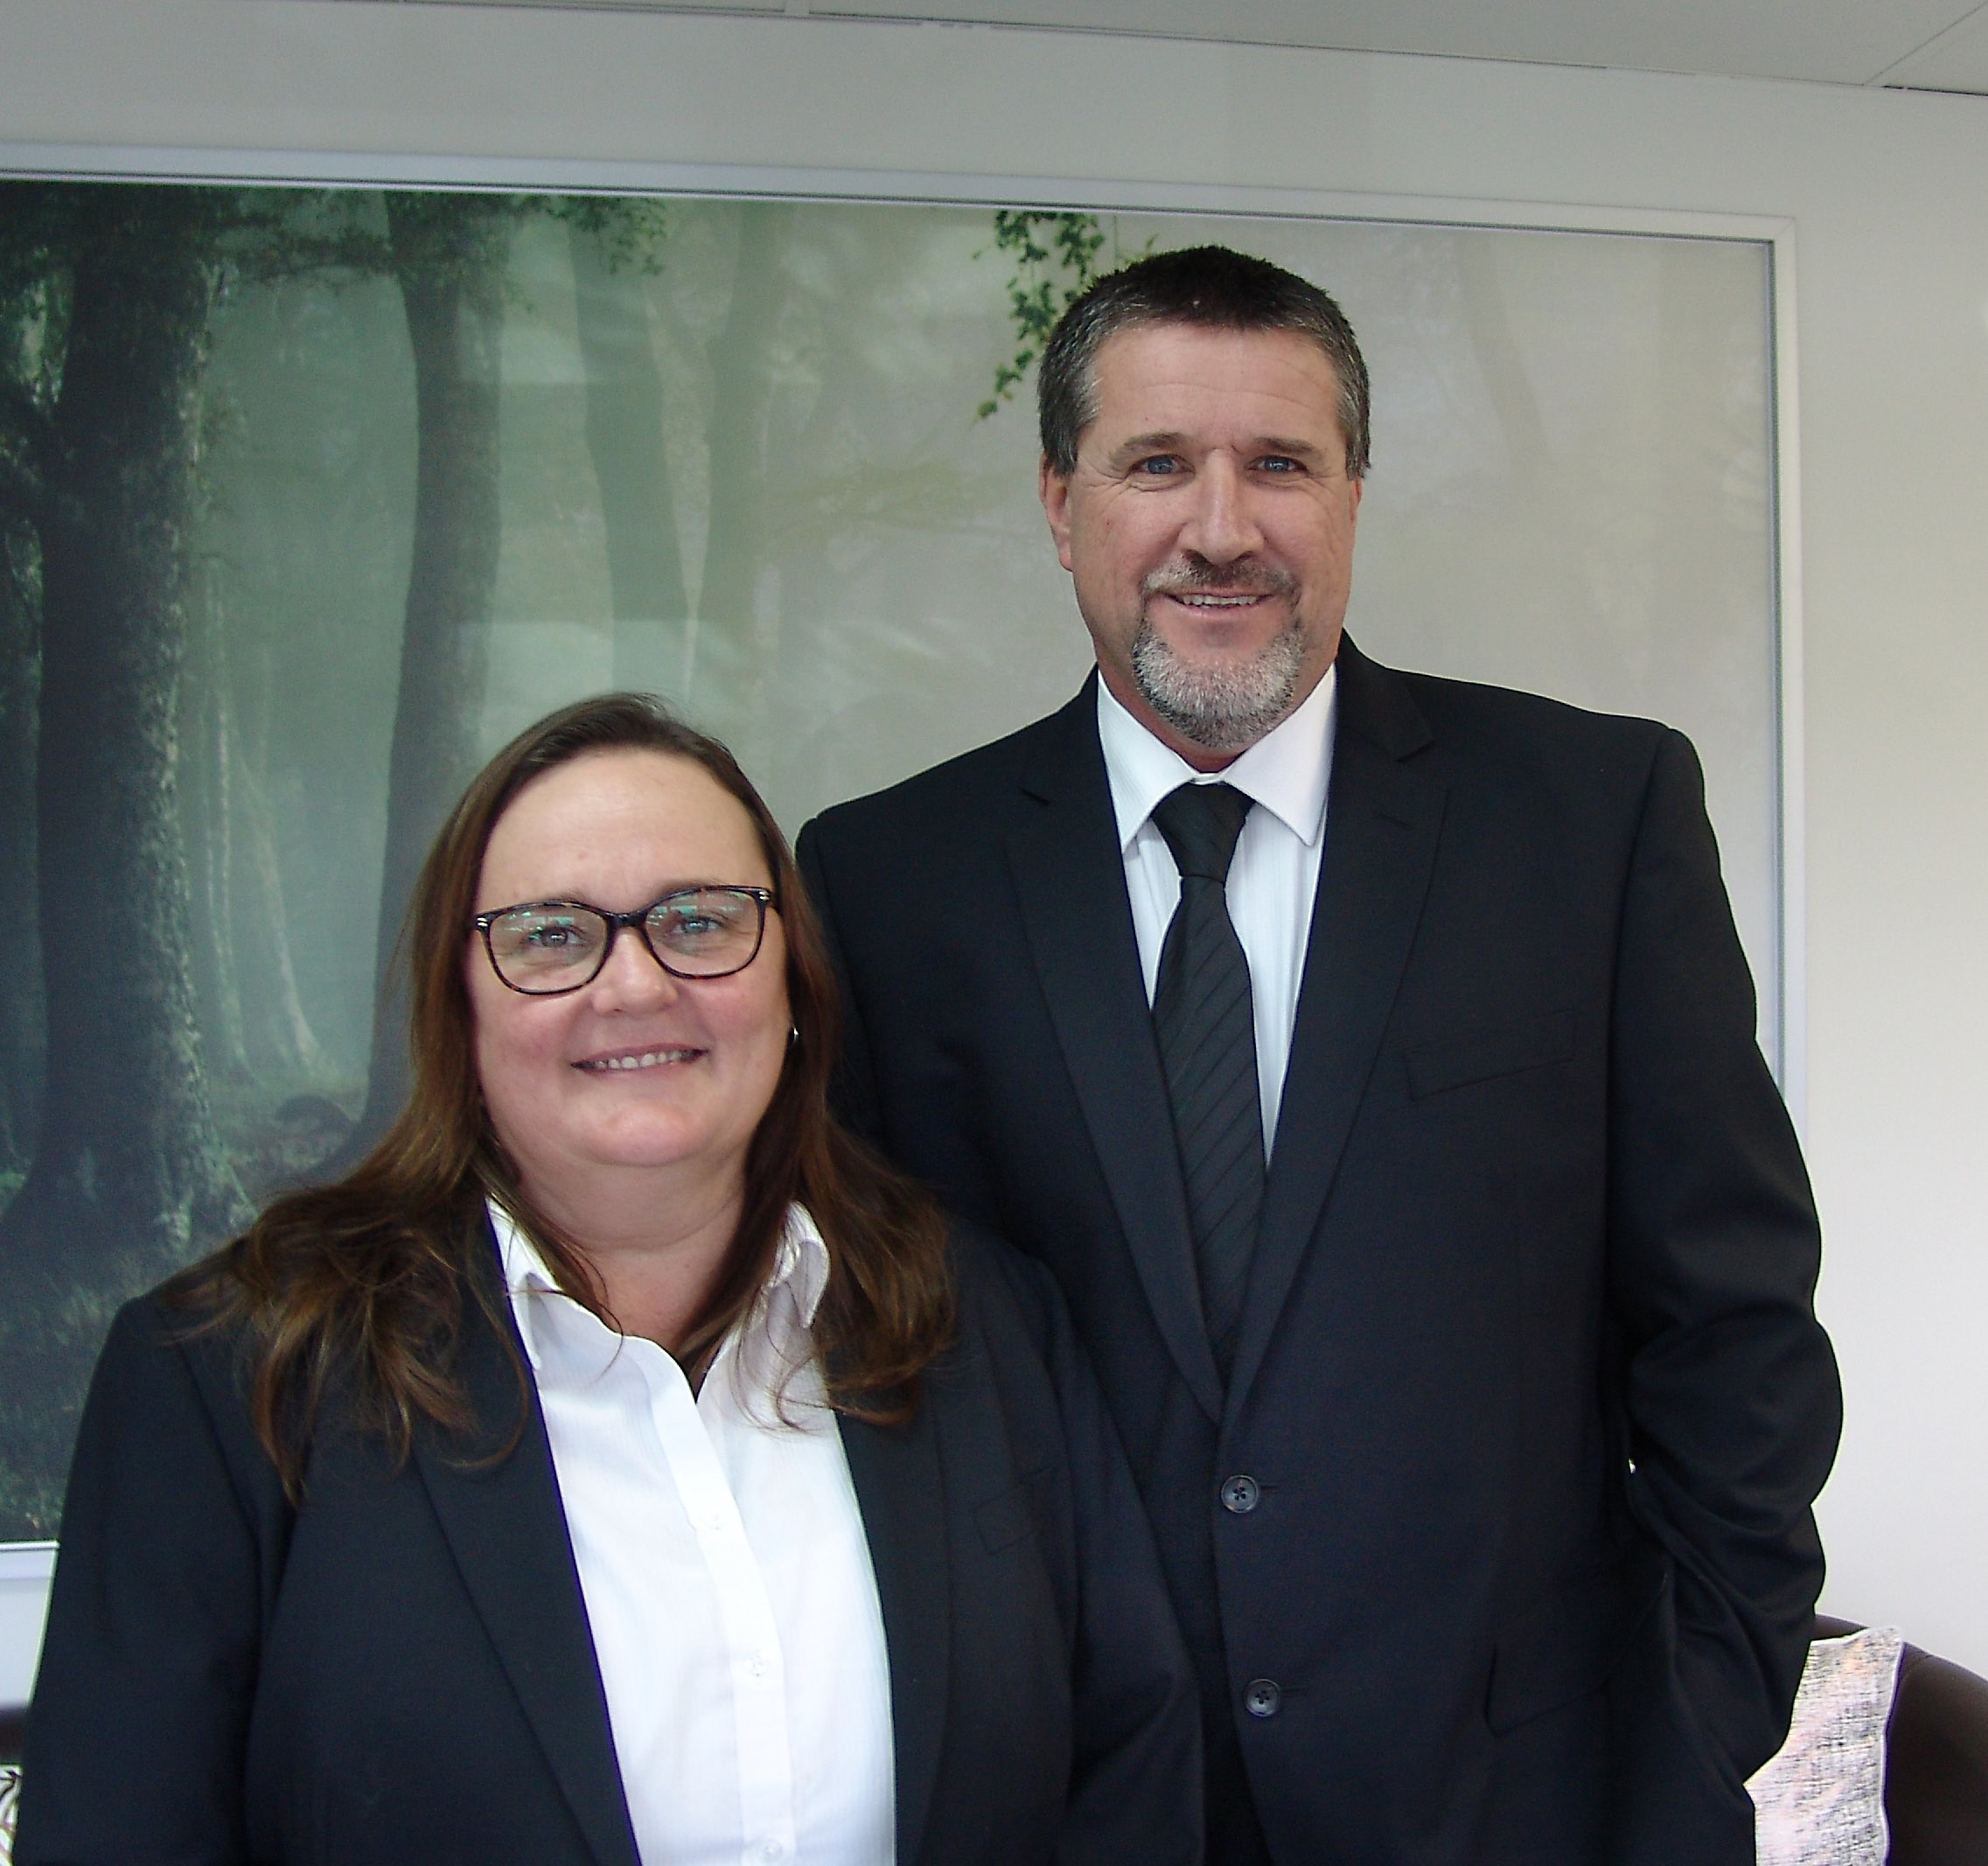 Image of Funeral Director Ian Greenall and office manager Colleen Greenall